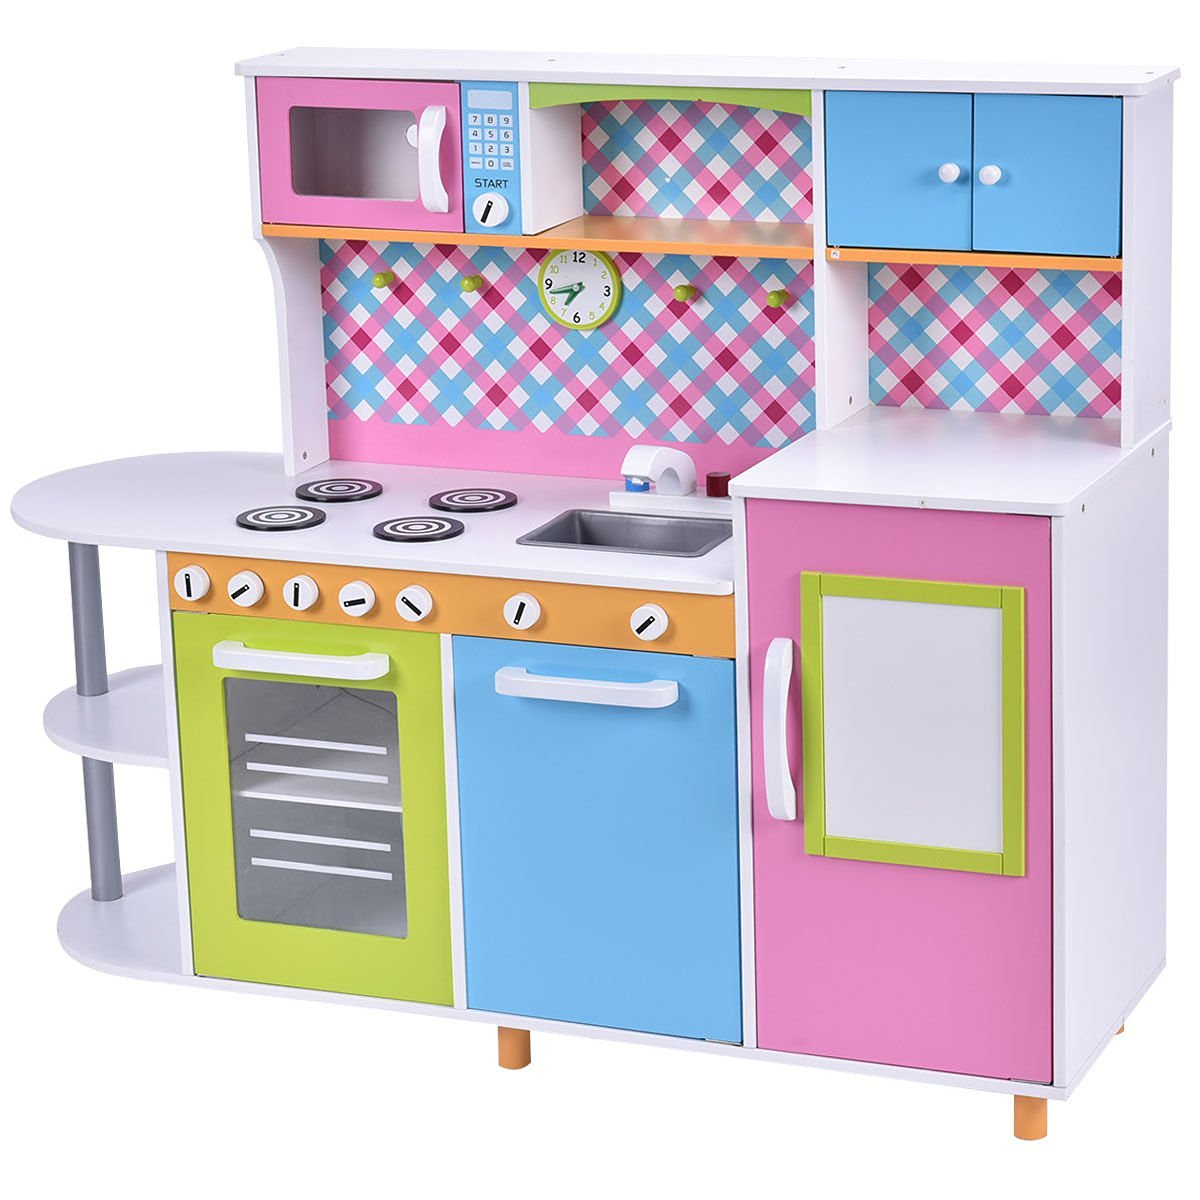 Get Quotations · Costzon New Wood Kitchen Toy Kids Cooking Pretend Play Set  Toddler Wooden Playset Gift